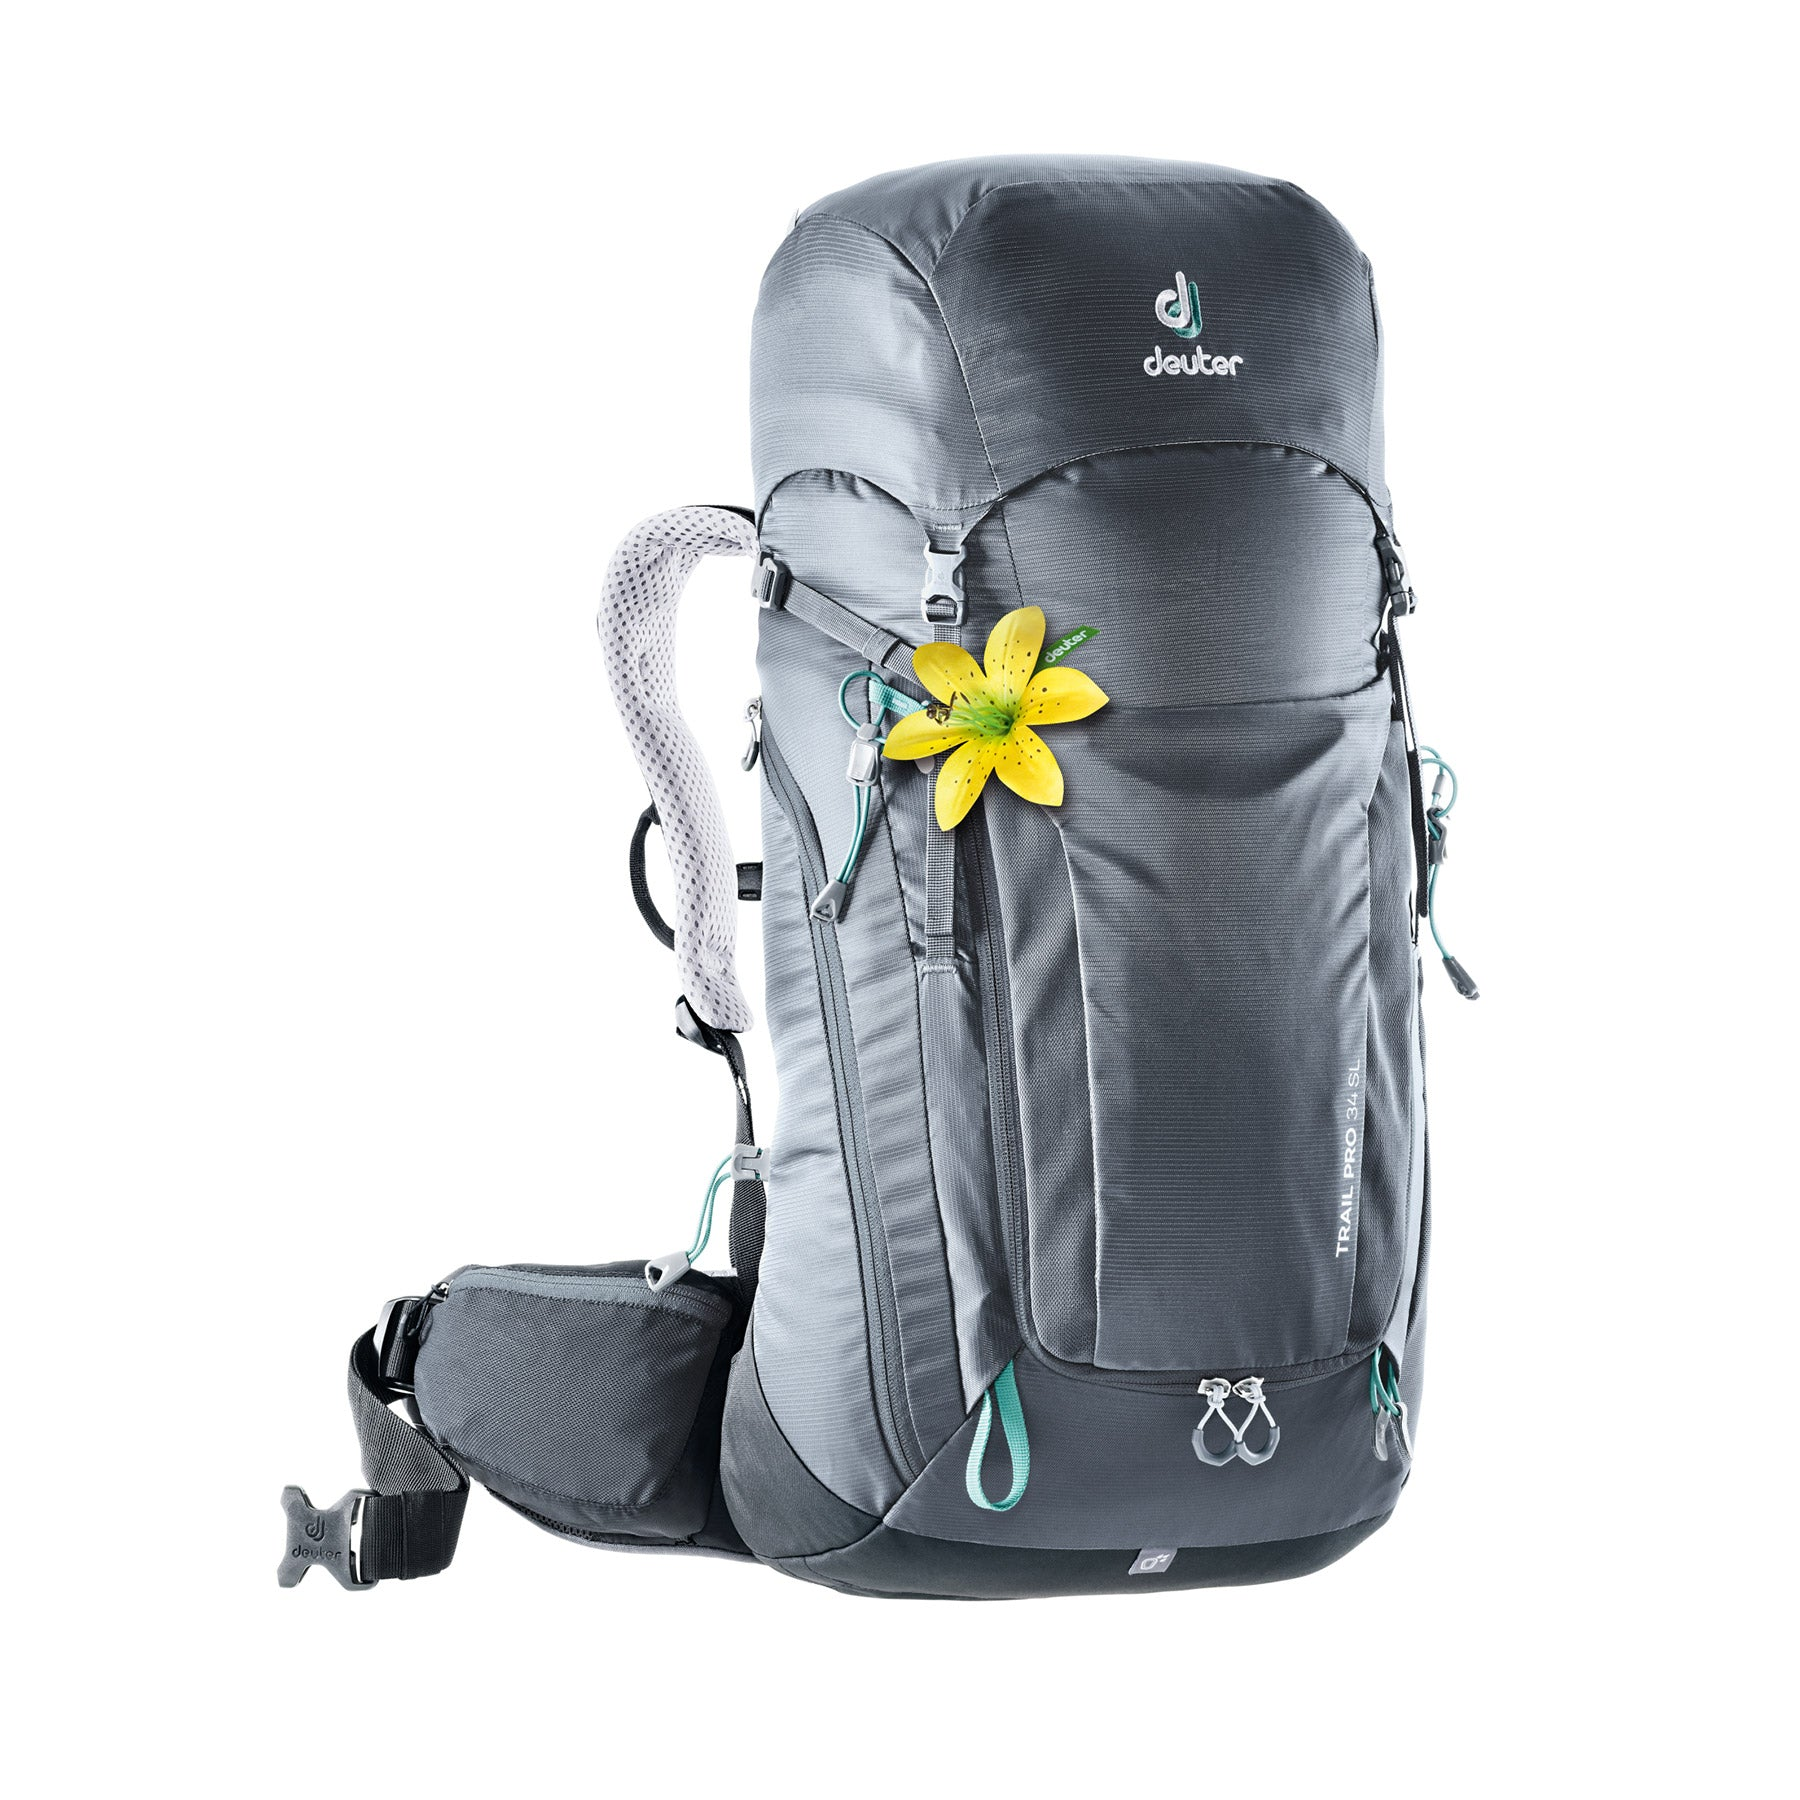 deuter trail pro 24 SL womens backpack front view in color grey with aqua details